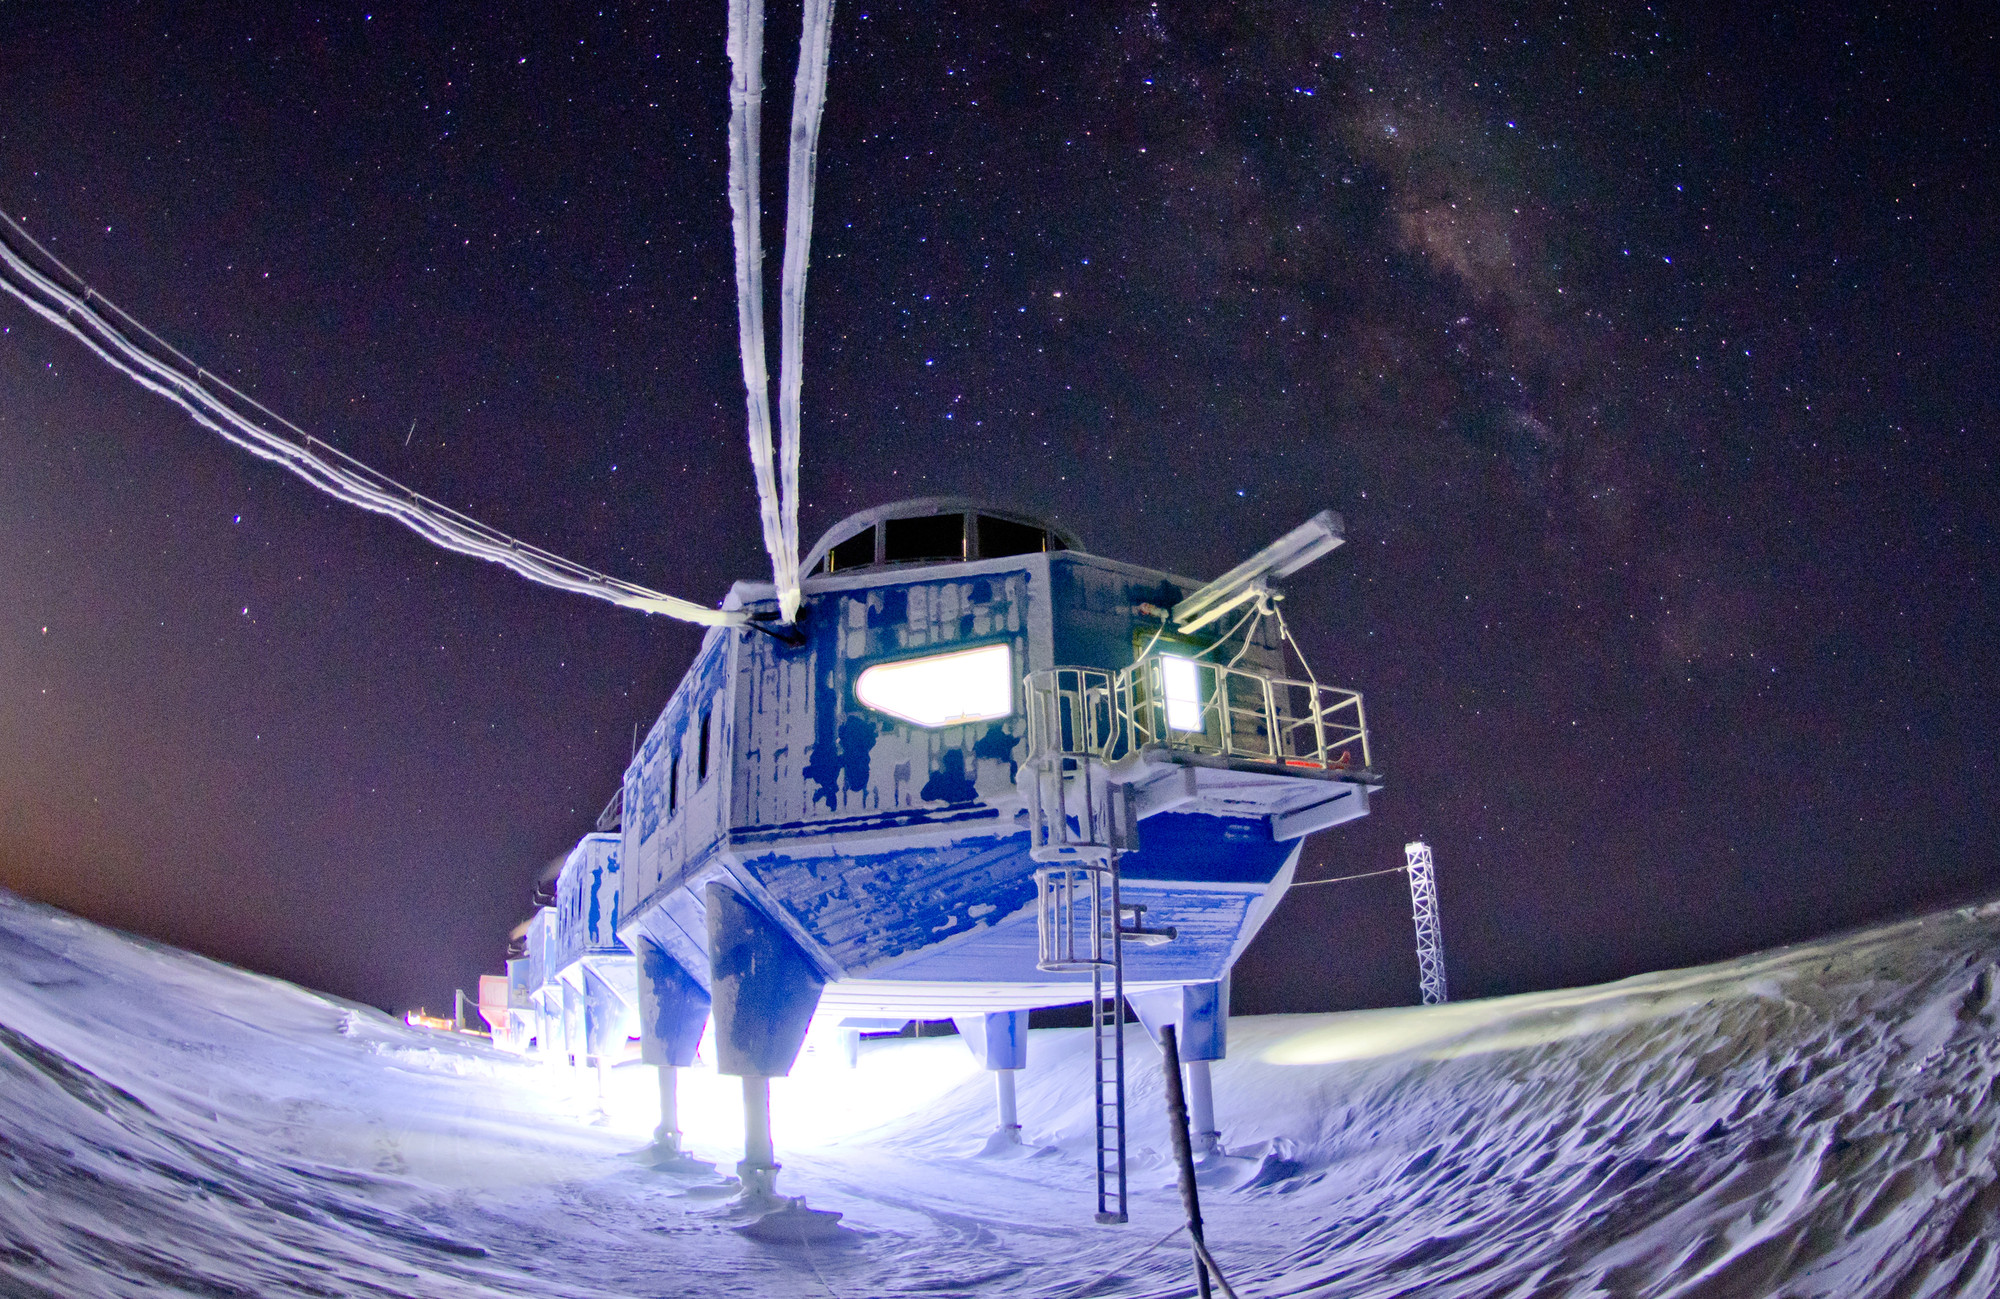 The World's First Relocatable Research Center Opens in Antarctica